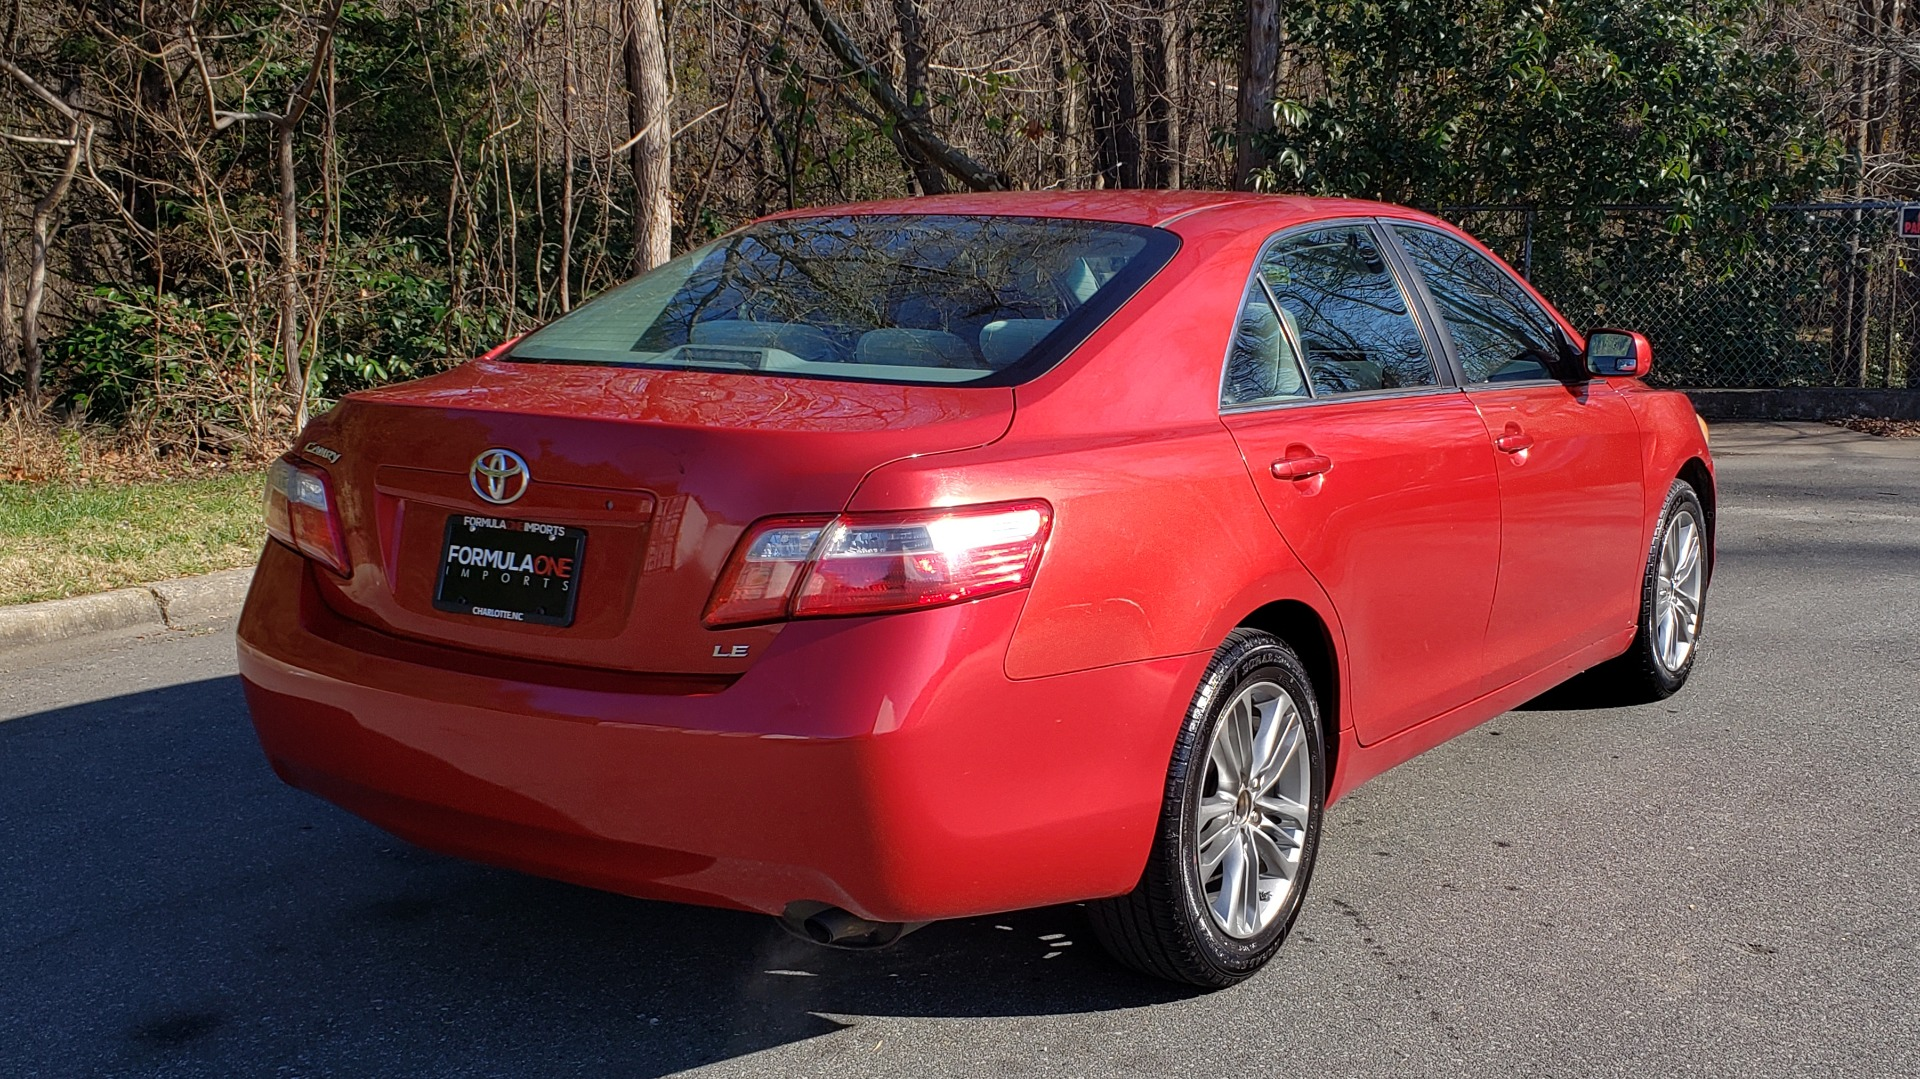 Used 2009 Toyota CAMRY LE / 2.4L SEDAN / FWD / 4-CYL / AUTO / CLOTH / CLEAN for sale $4,999 at Formula Imports in Charlotte NC 28227 6